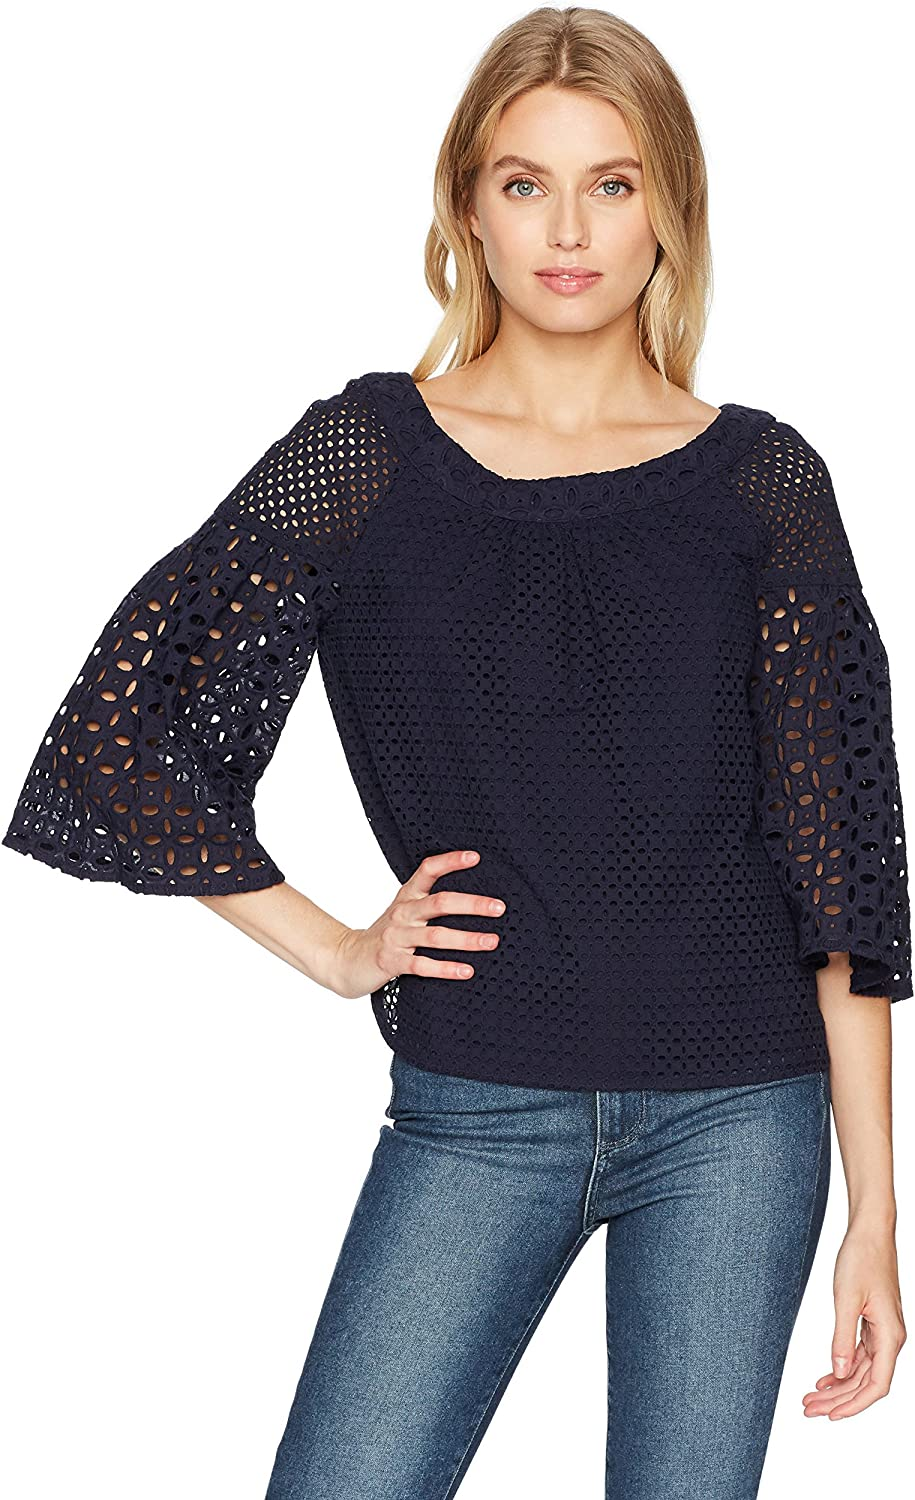 Trina Turk Womens Coit Eyelet Exaggerated Sleeve Top Blouse